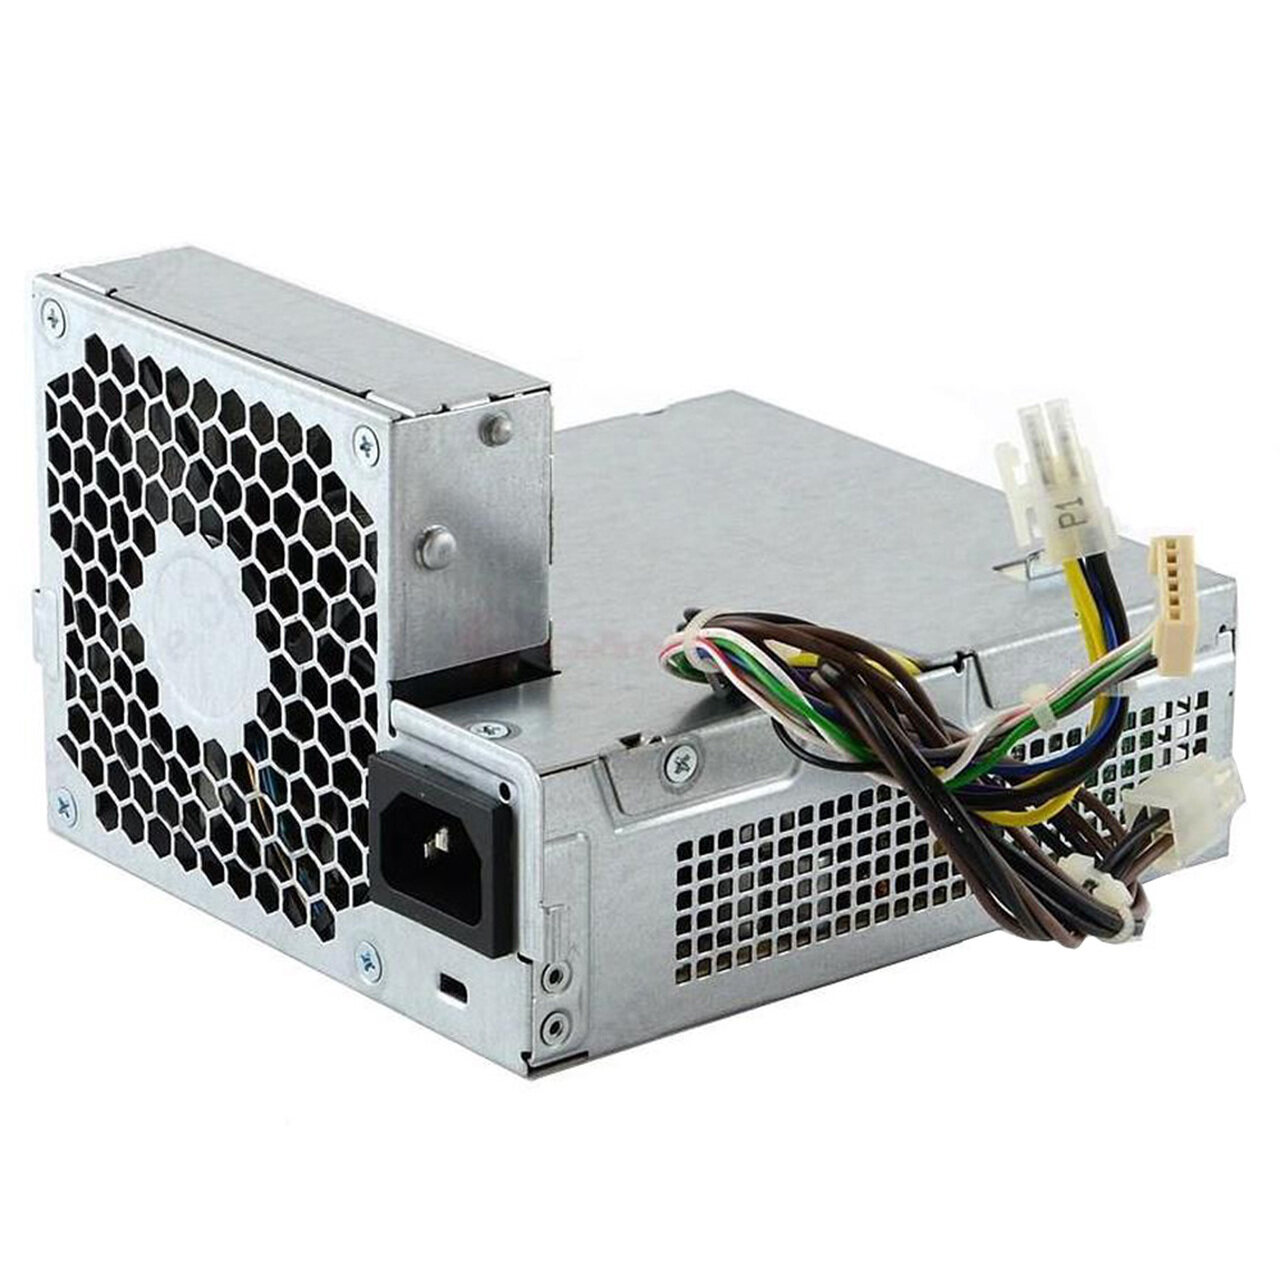 HP  240W Pro Elite 6300 8300 SFF DPS-240 Power Supply 611481-001